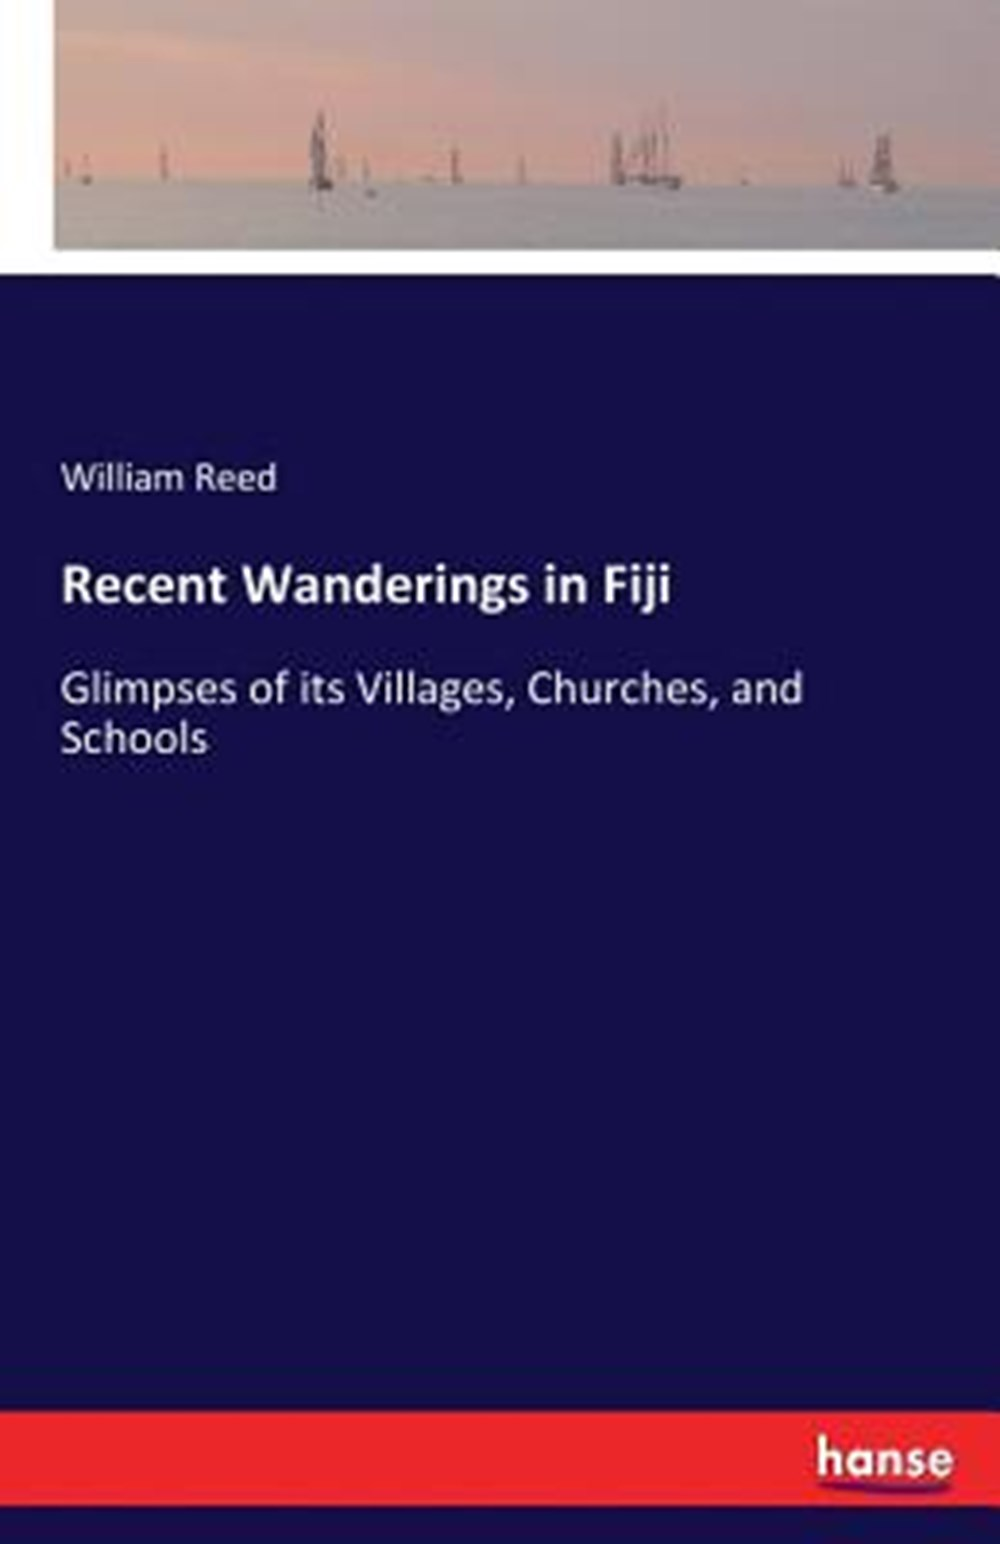 Recent Wanderings in Fiji Glimpses of its Villages, Churches, and Schools